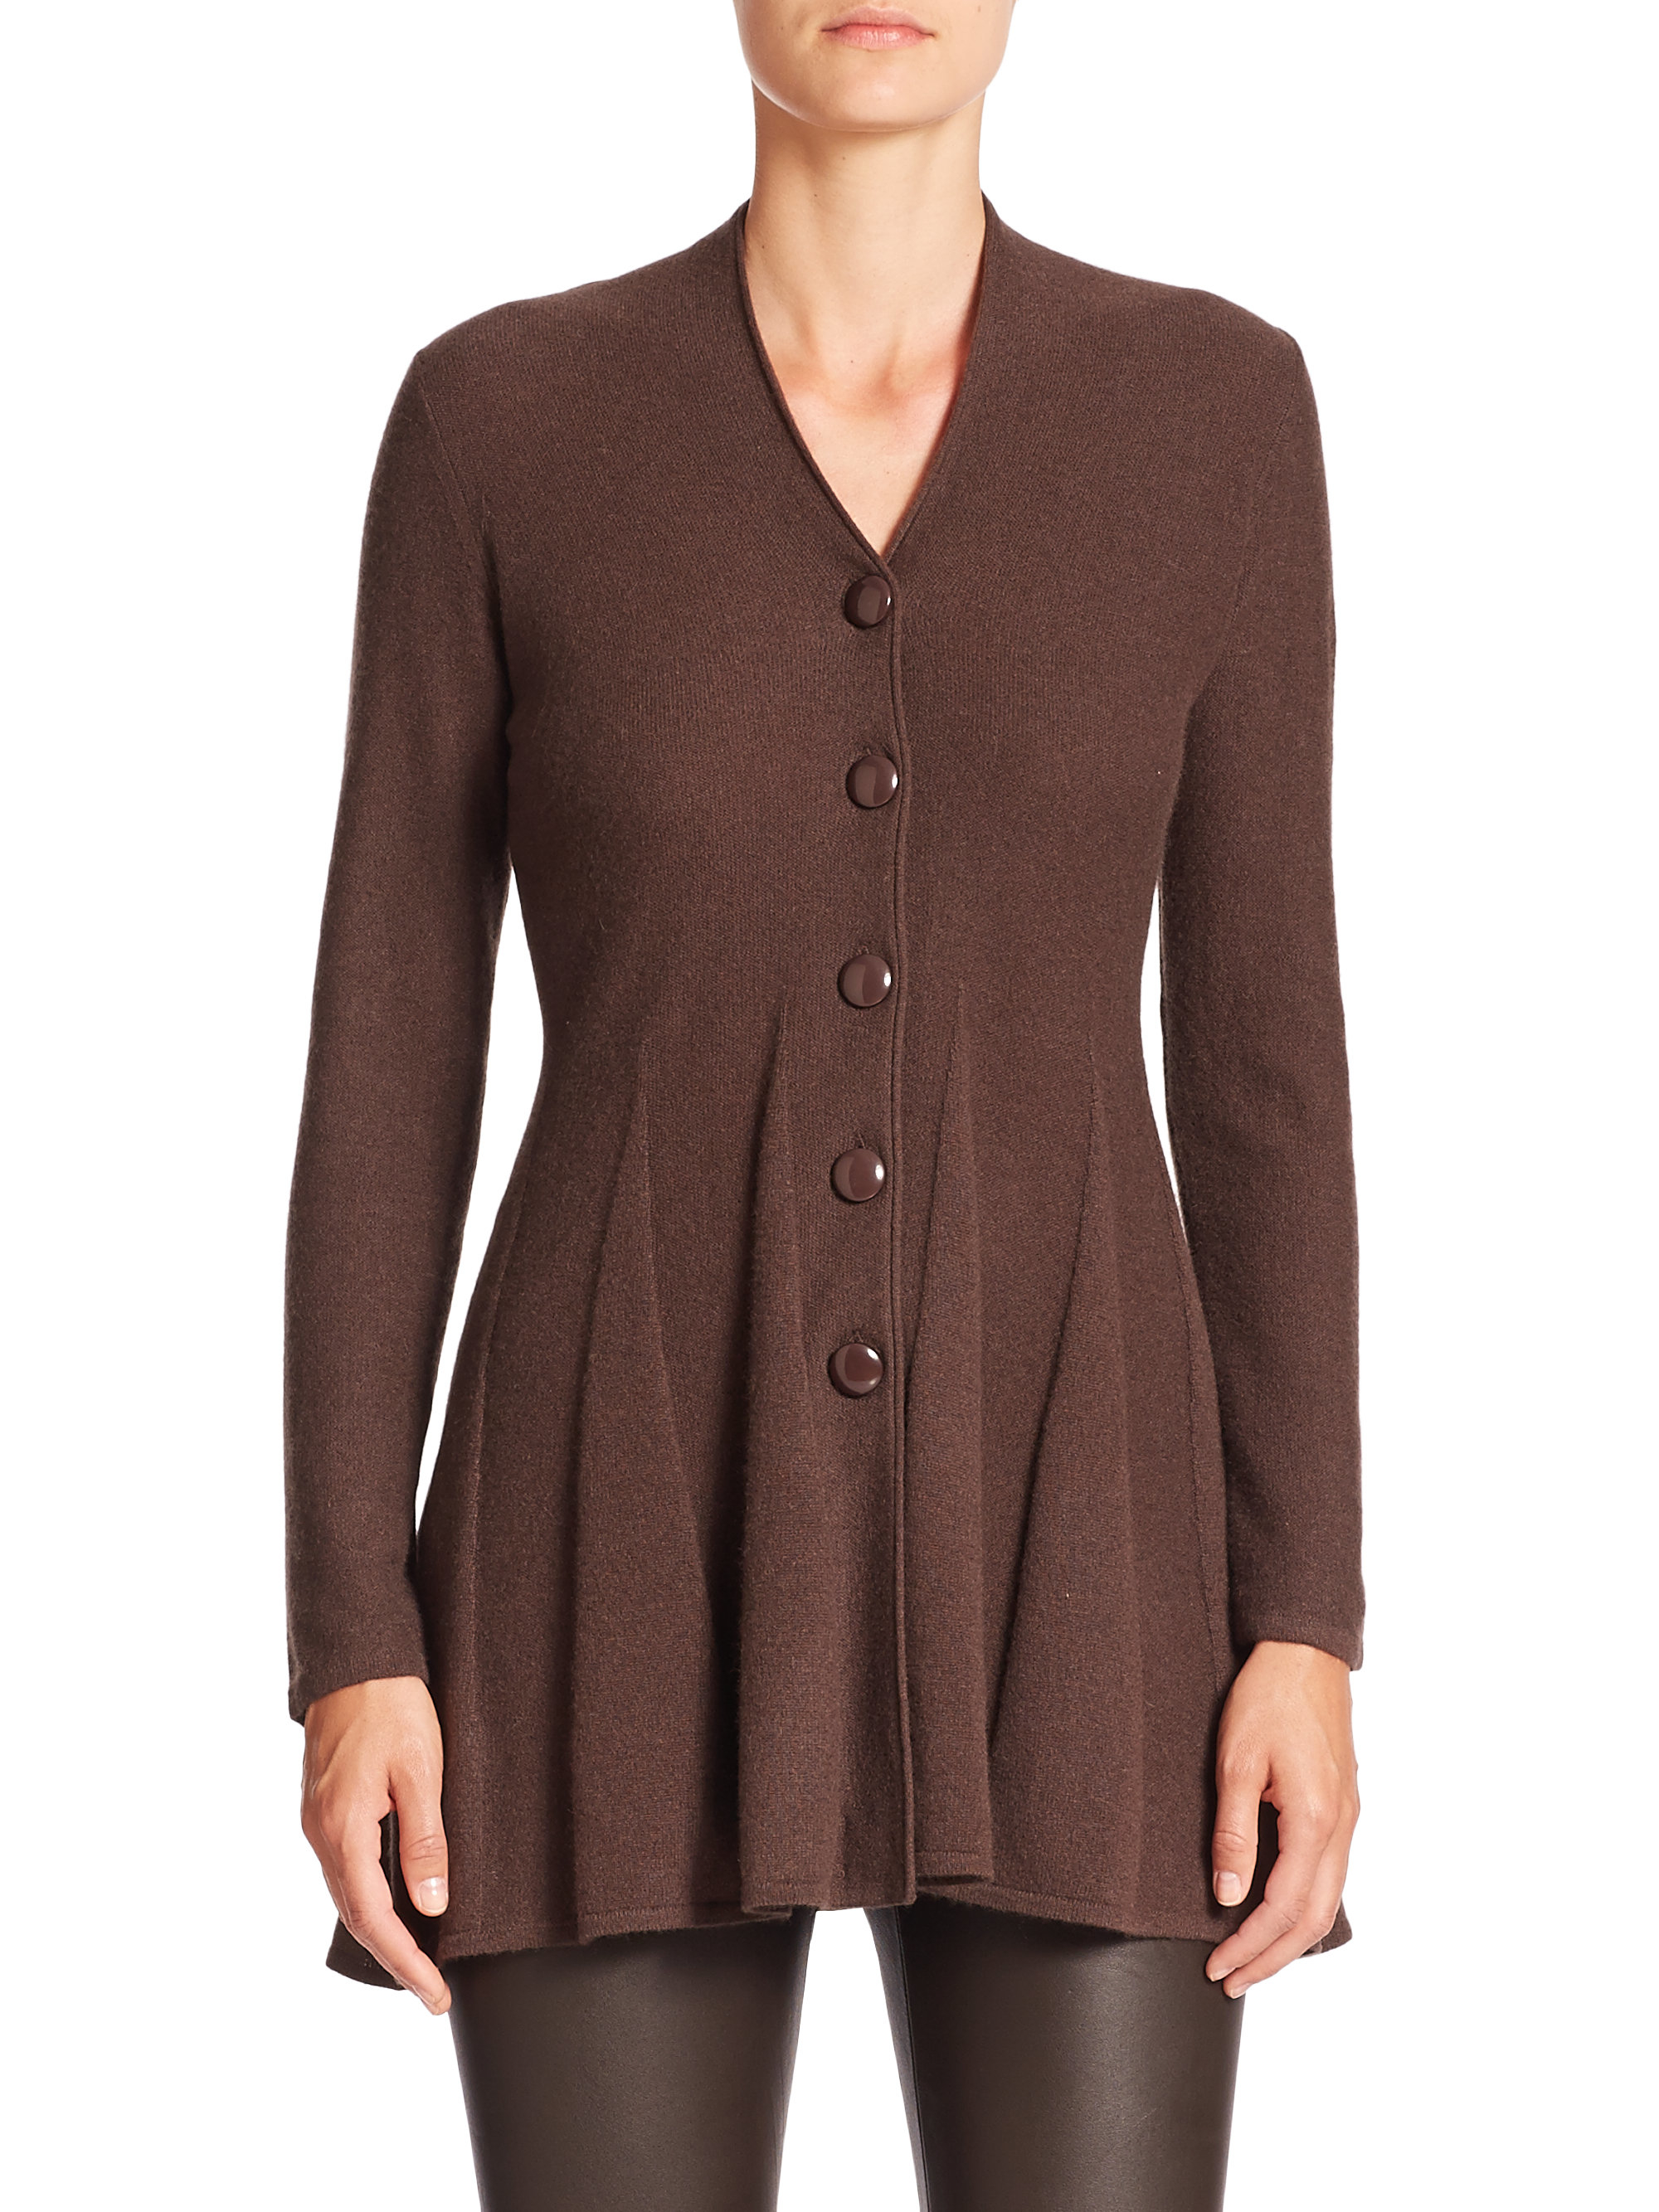 Armani Cashmere Godet Cardigan in Brown | Lyst